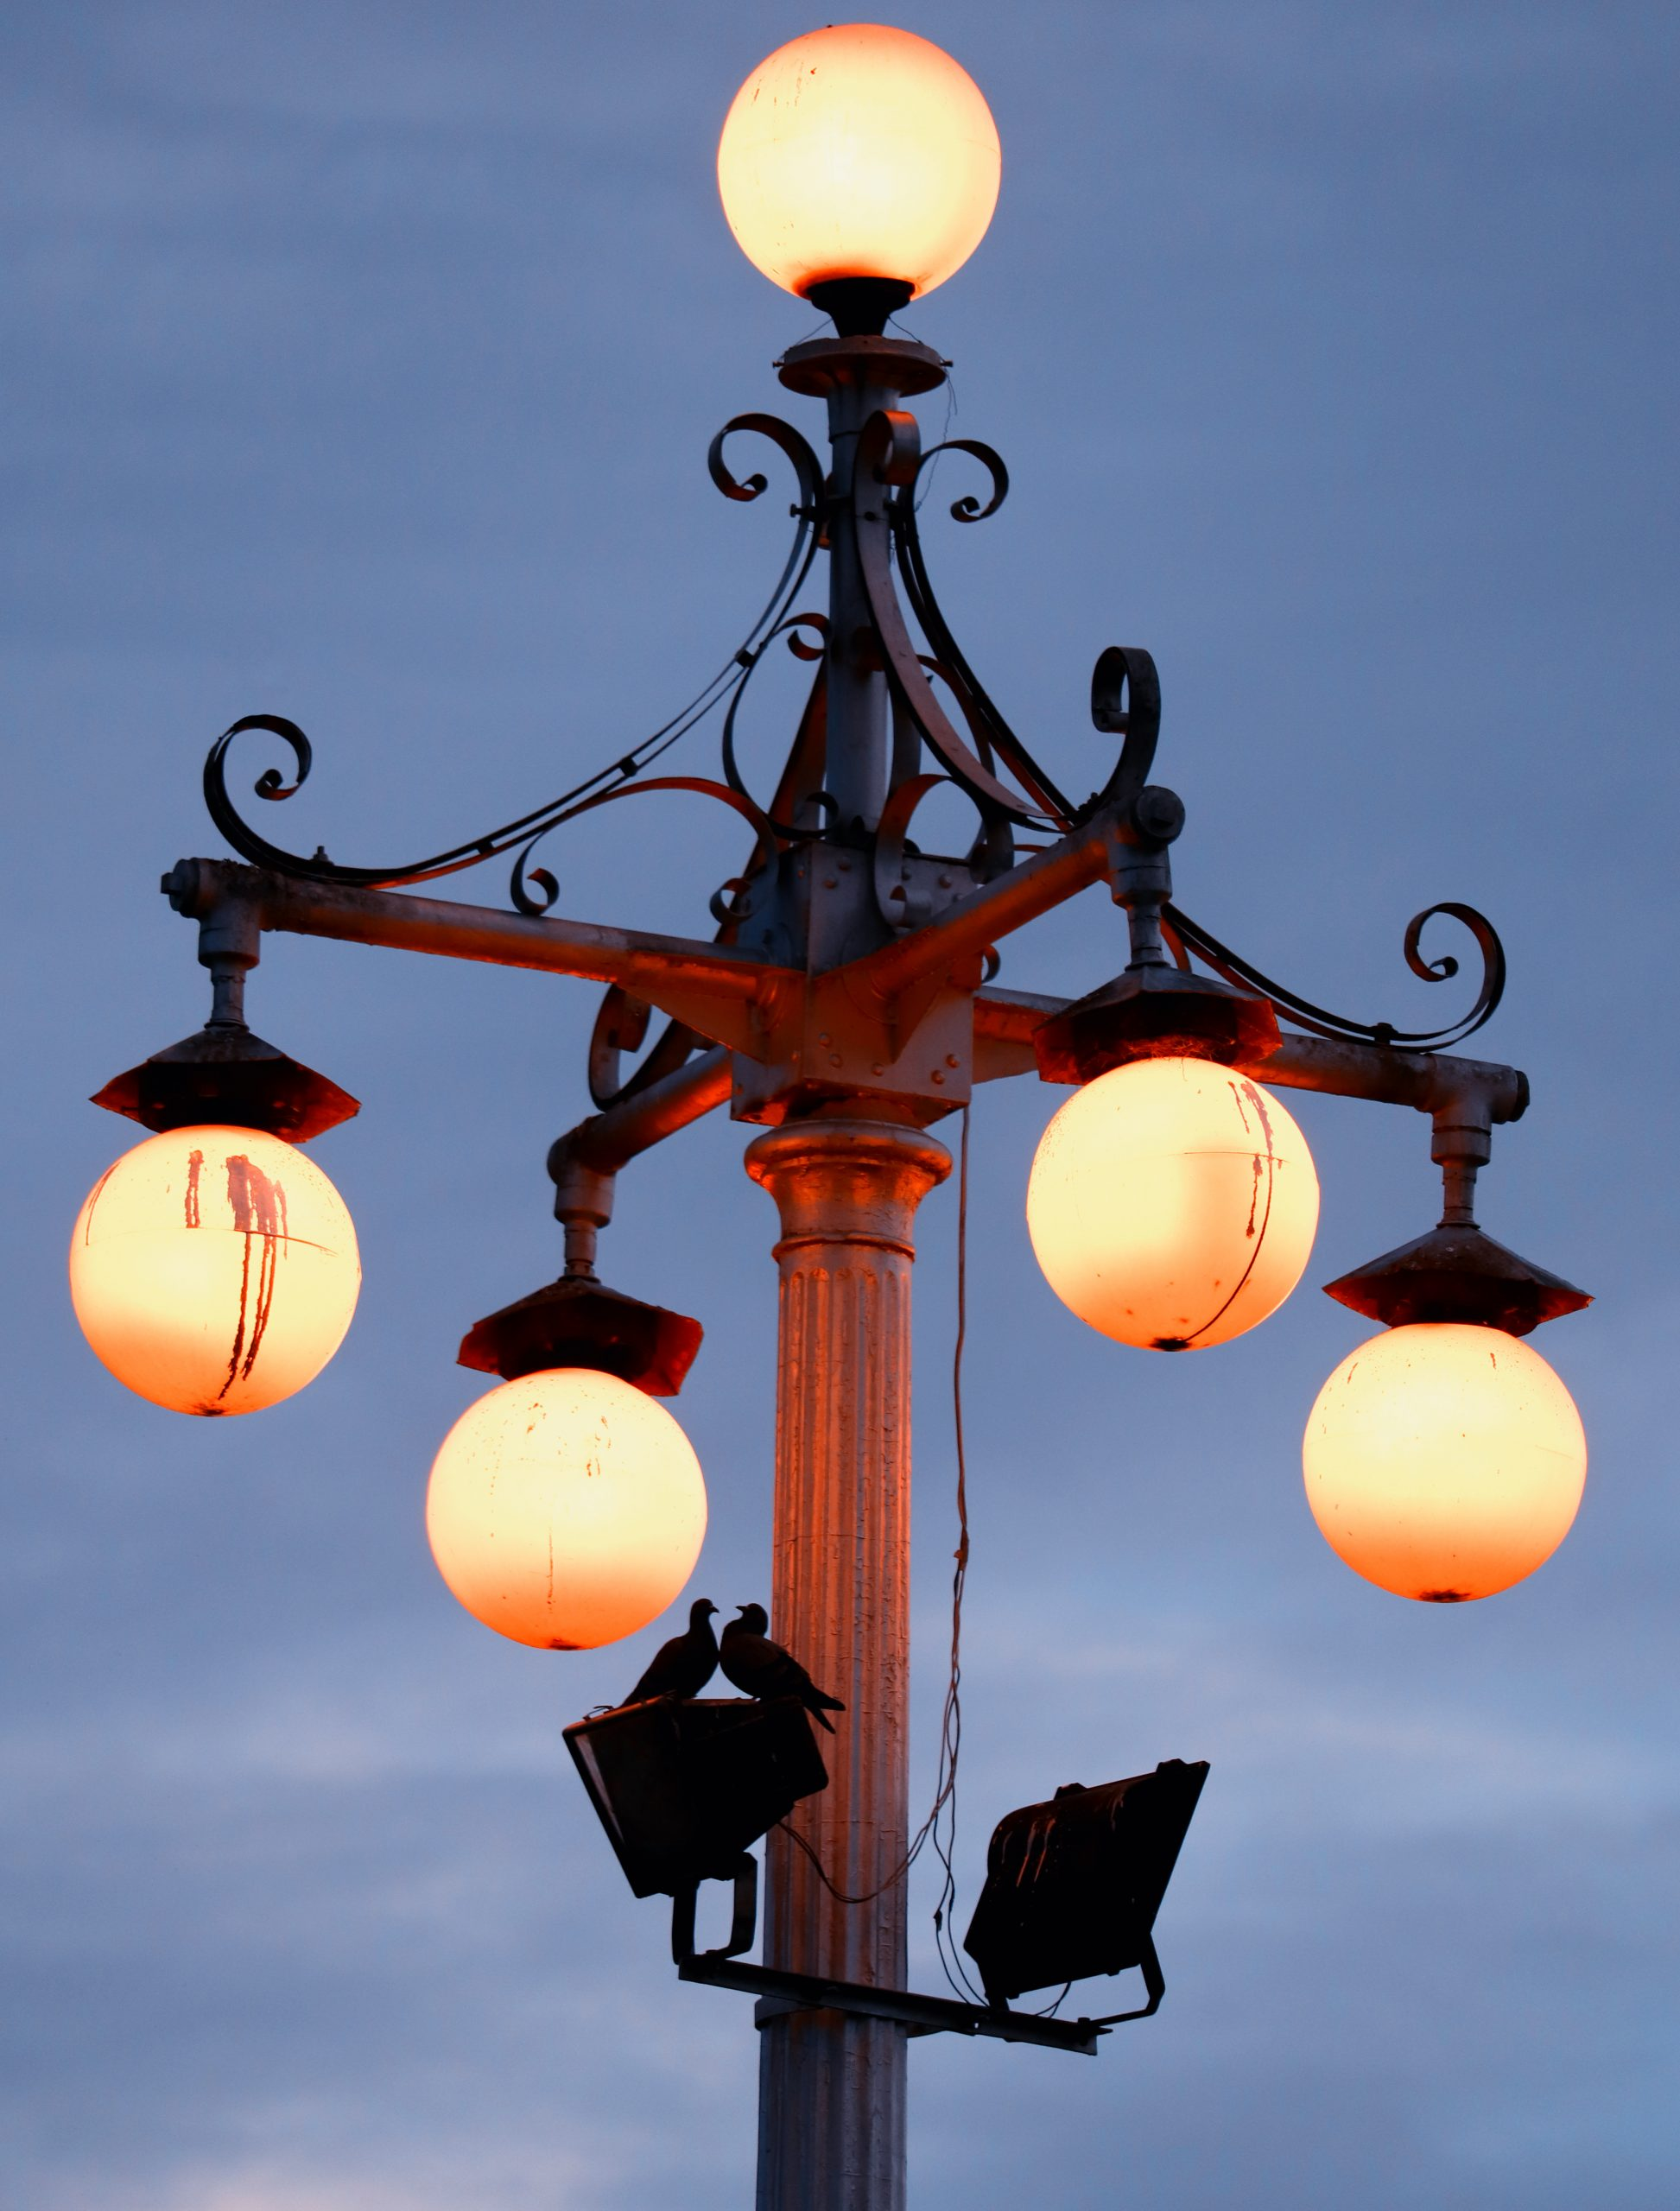 Bulbs of a light pole